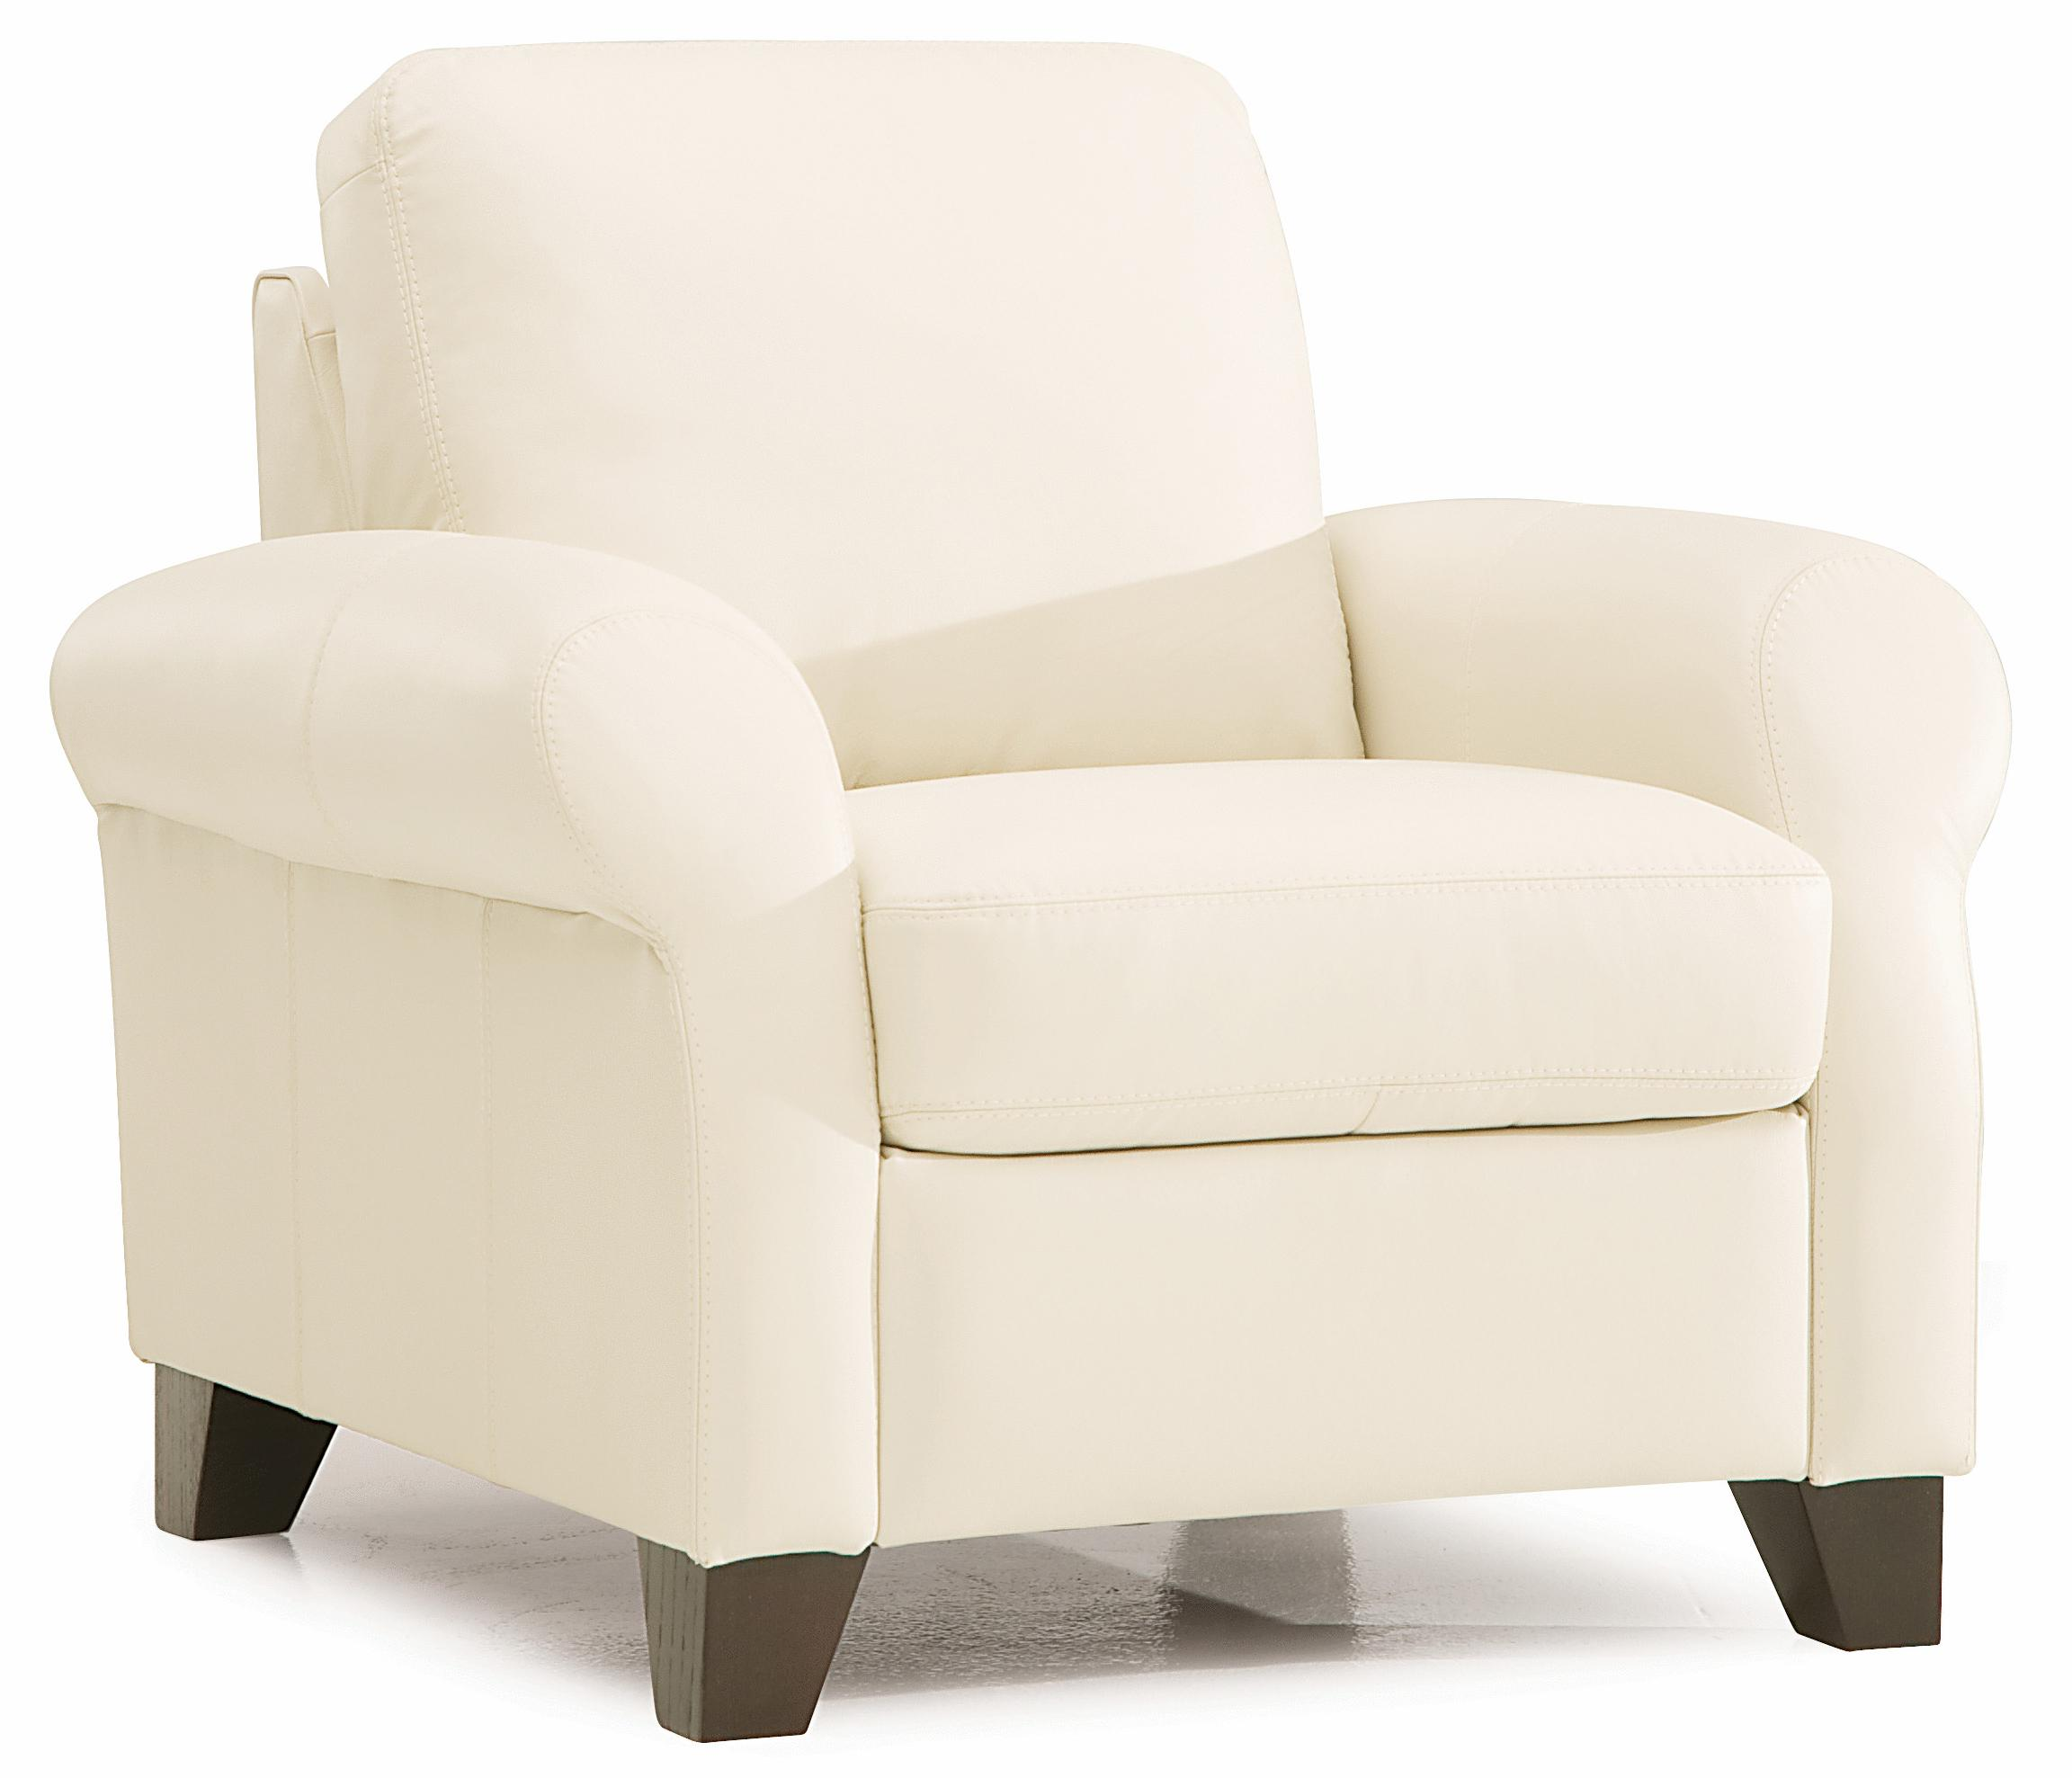 Recliner Chairs Ottawa Palliser Ottawa Transitional Chair With Sock Arms And Wood